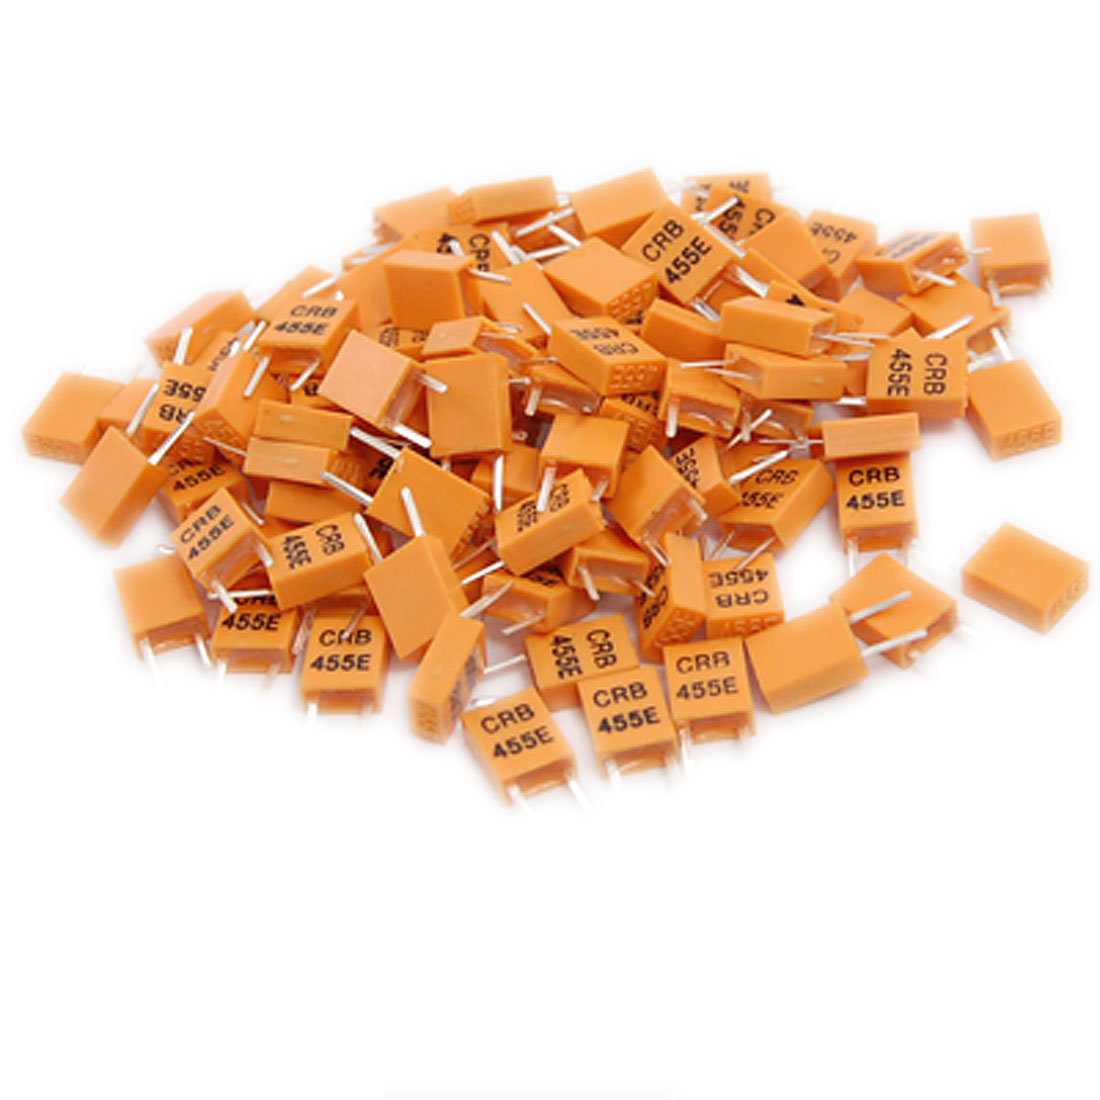 100 Pcs 5mm Pitch DIP CRB 455E Remote Control Ceramic Filter